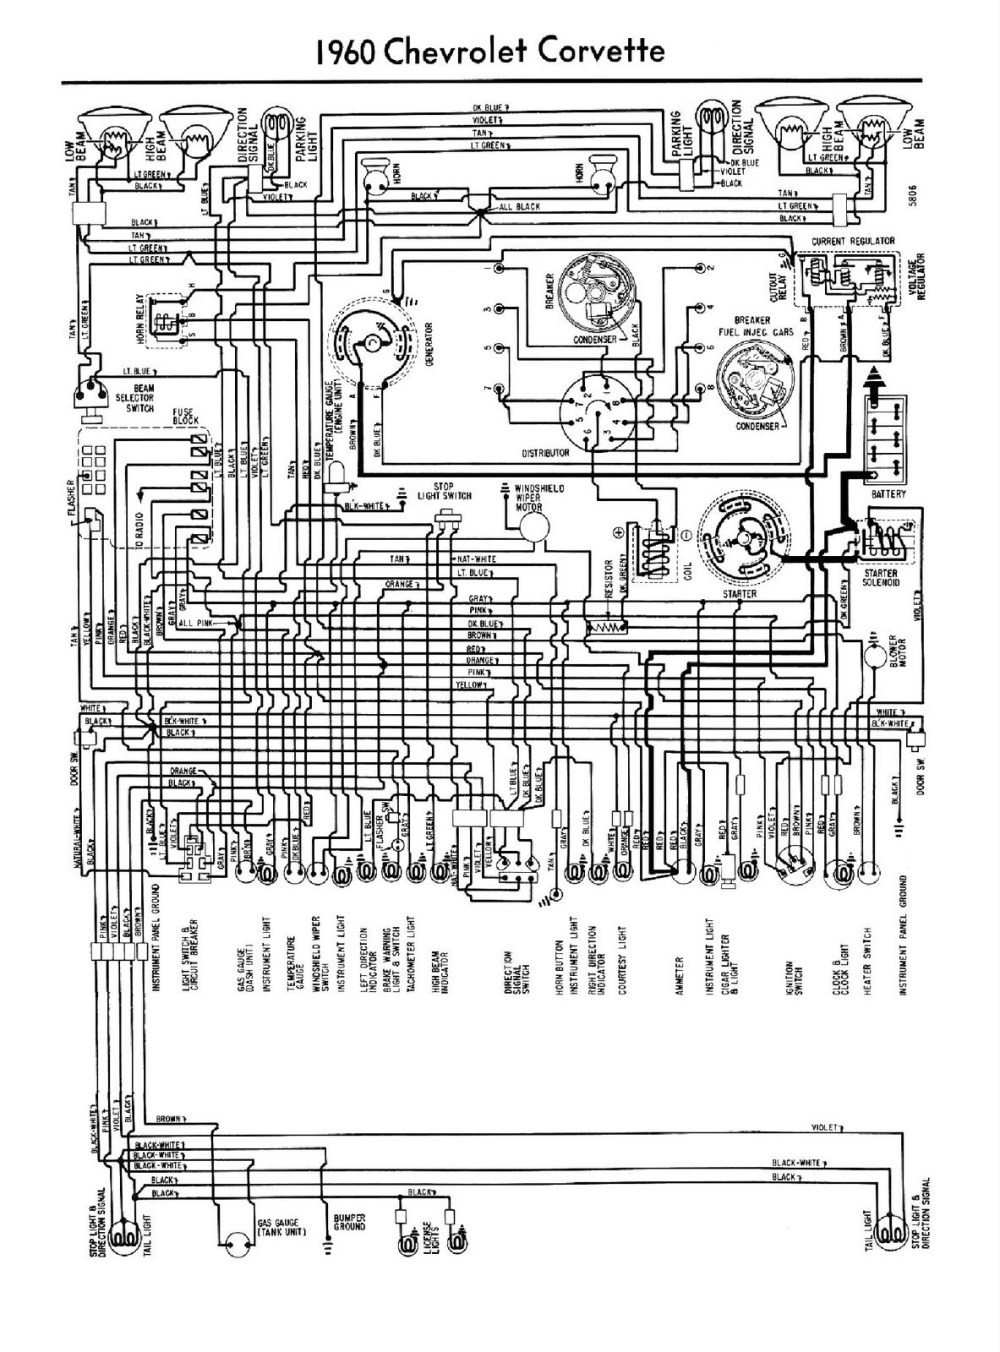 medium resolution of 1975 corvette ignition wiring diagram wiring diagrams rh 90 treatchildtrauma de 76 corvette wiring diagram 1984